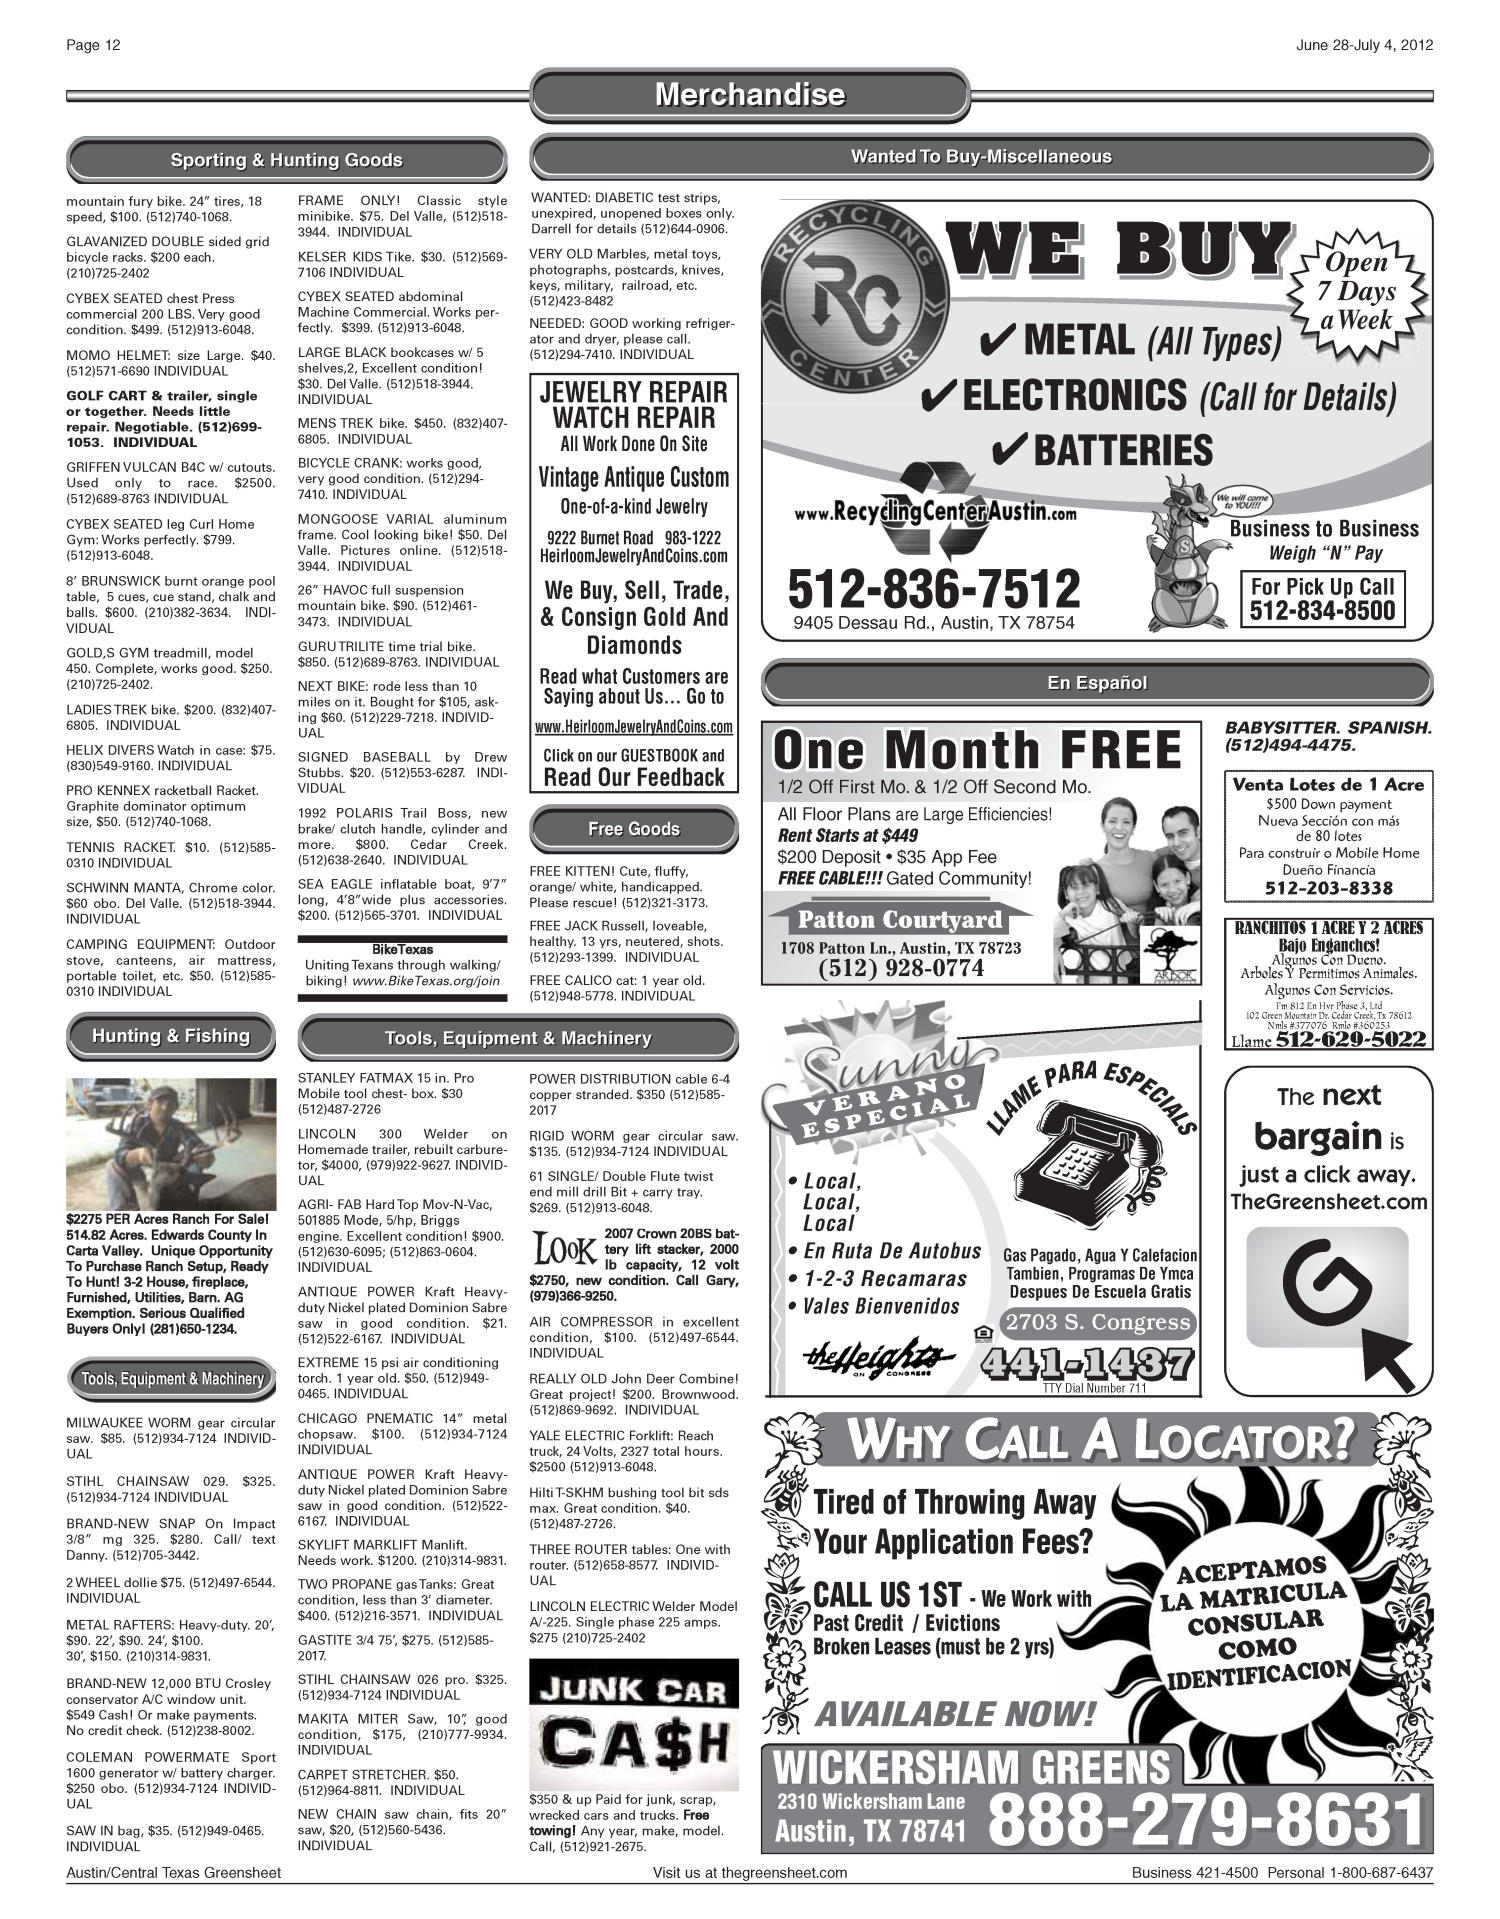 Greensheet homes for rent austin tx - Cheap The Greensheet Austin Tex Vol No Ed Thursday June Page Of The Portal To Texas History With Greensheet Houses For Rent